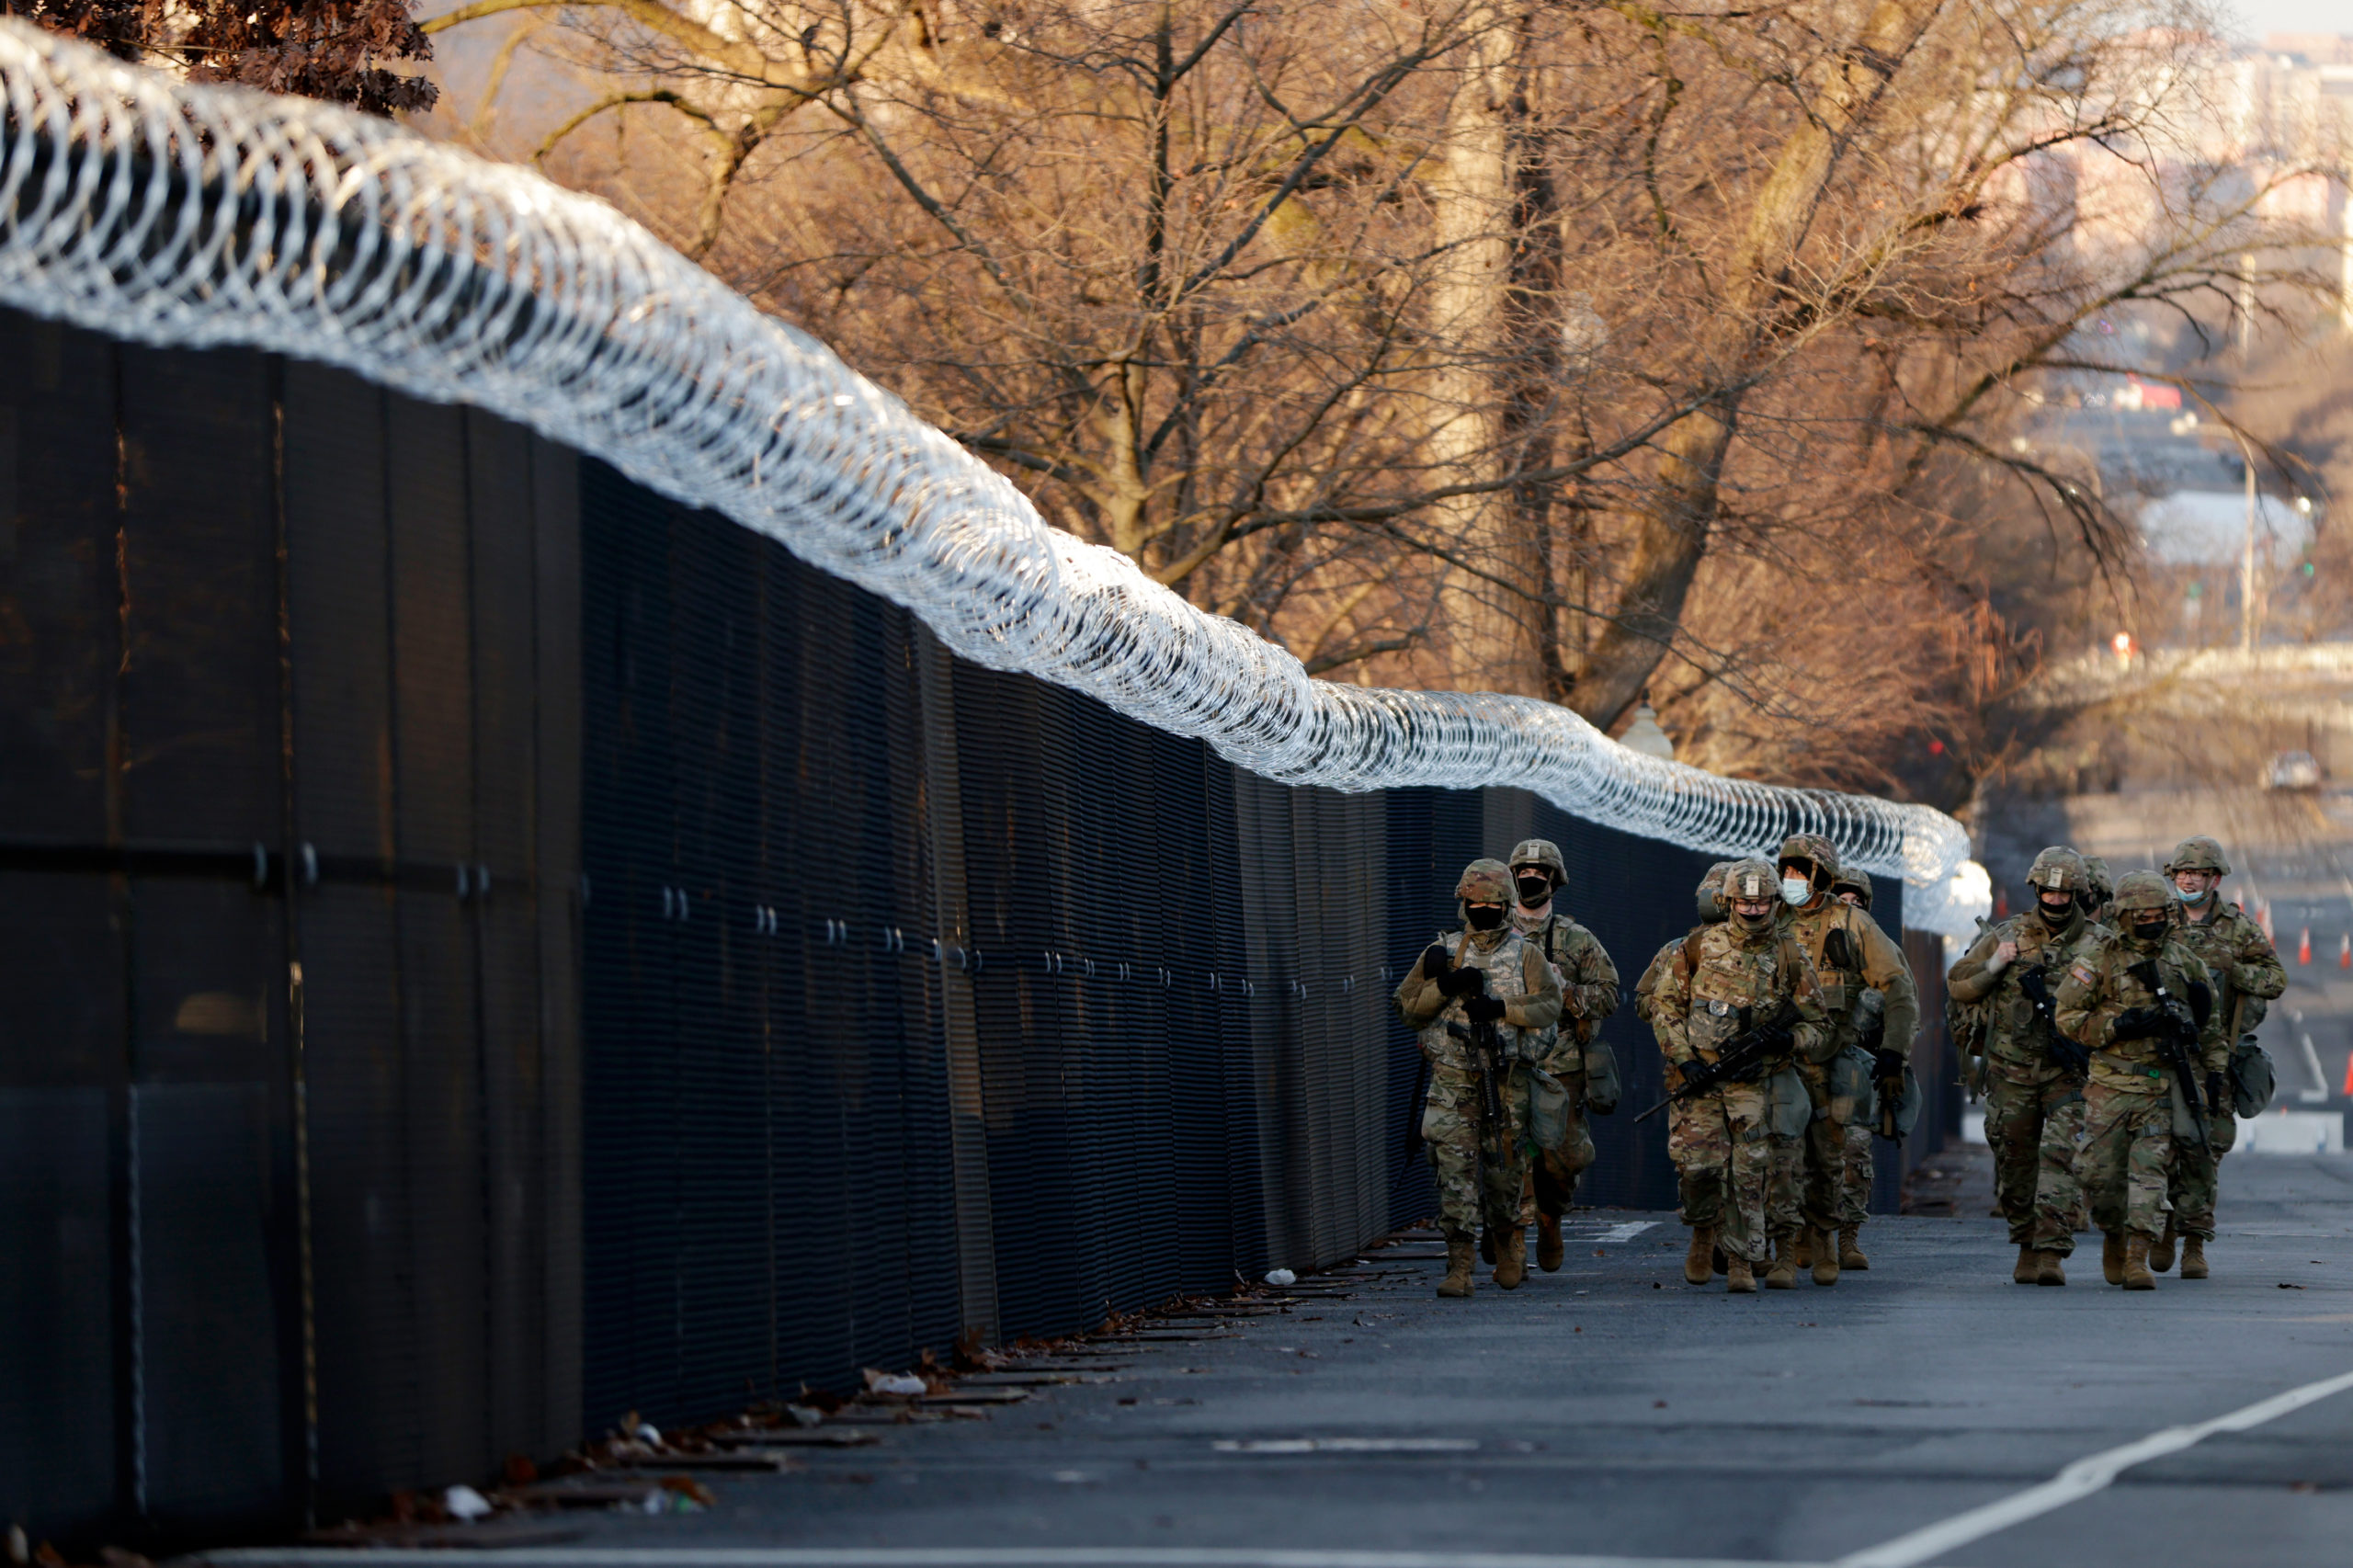 WASHINGTON, DC - JANUARY 16: A group of Virginia National Guard patrol around the razor wire fence surrounding the U.S. Capitol grounds on January 16, 2021 in Washington, DC. After last week's riots at the U.S. Capitol Building, the FBI has warned of additional threats in the nation's capital and in all 50 states. According to reports, as many as 25,000 National Guard soldiers will be guarding the city as preparations are made for the inauguration of Joe Biden as the 46th U.S. President. (Photo by Samuel Corum/Getty Images)